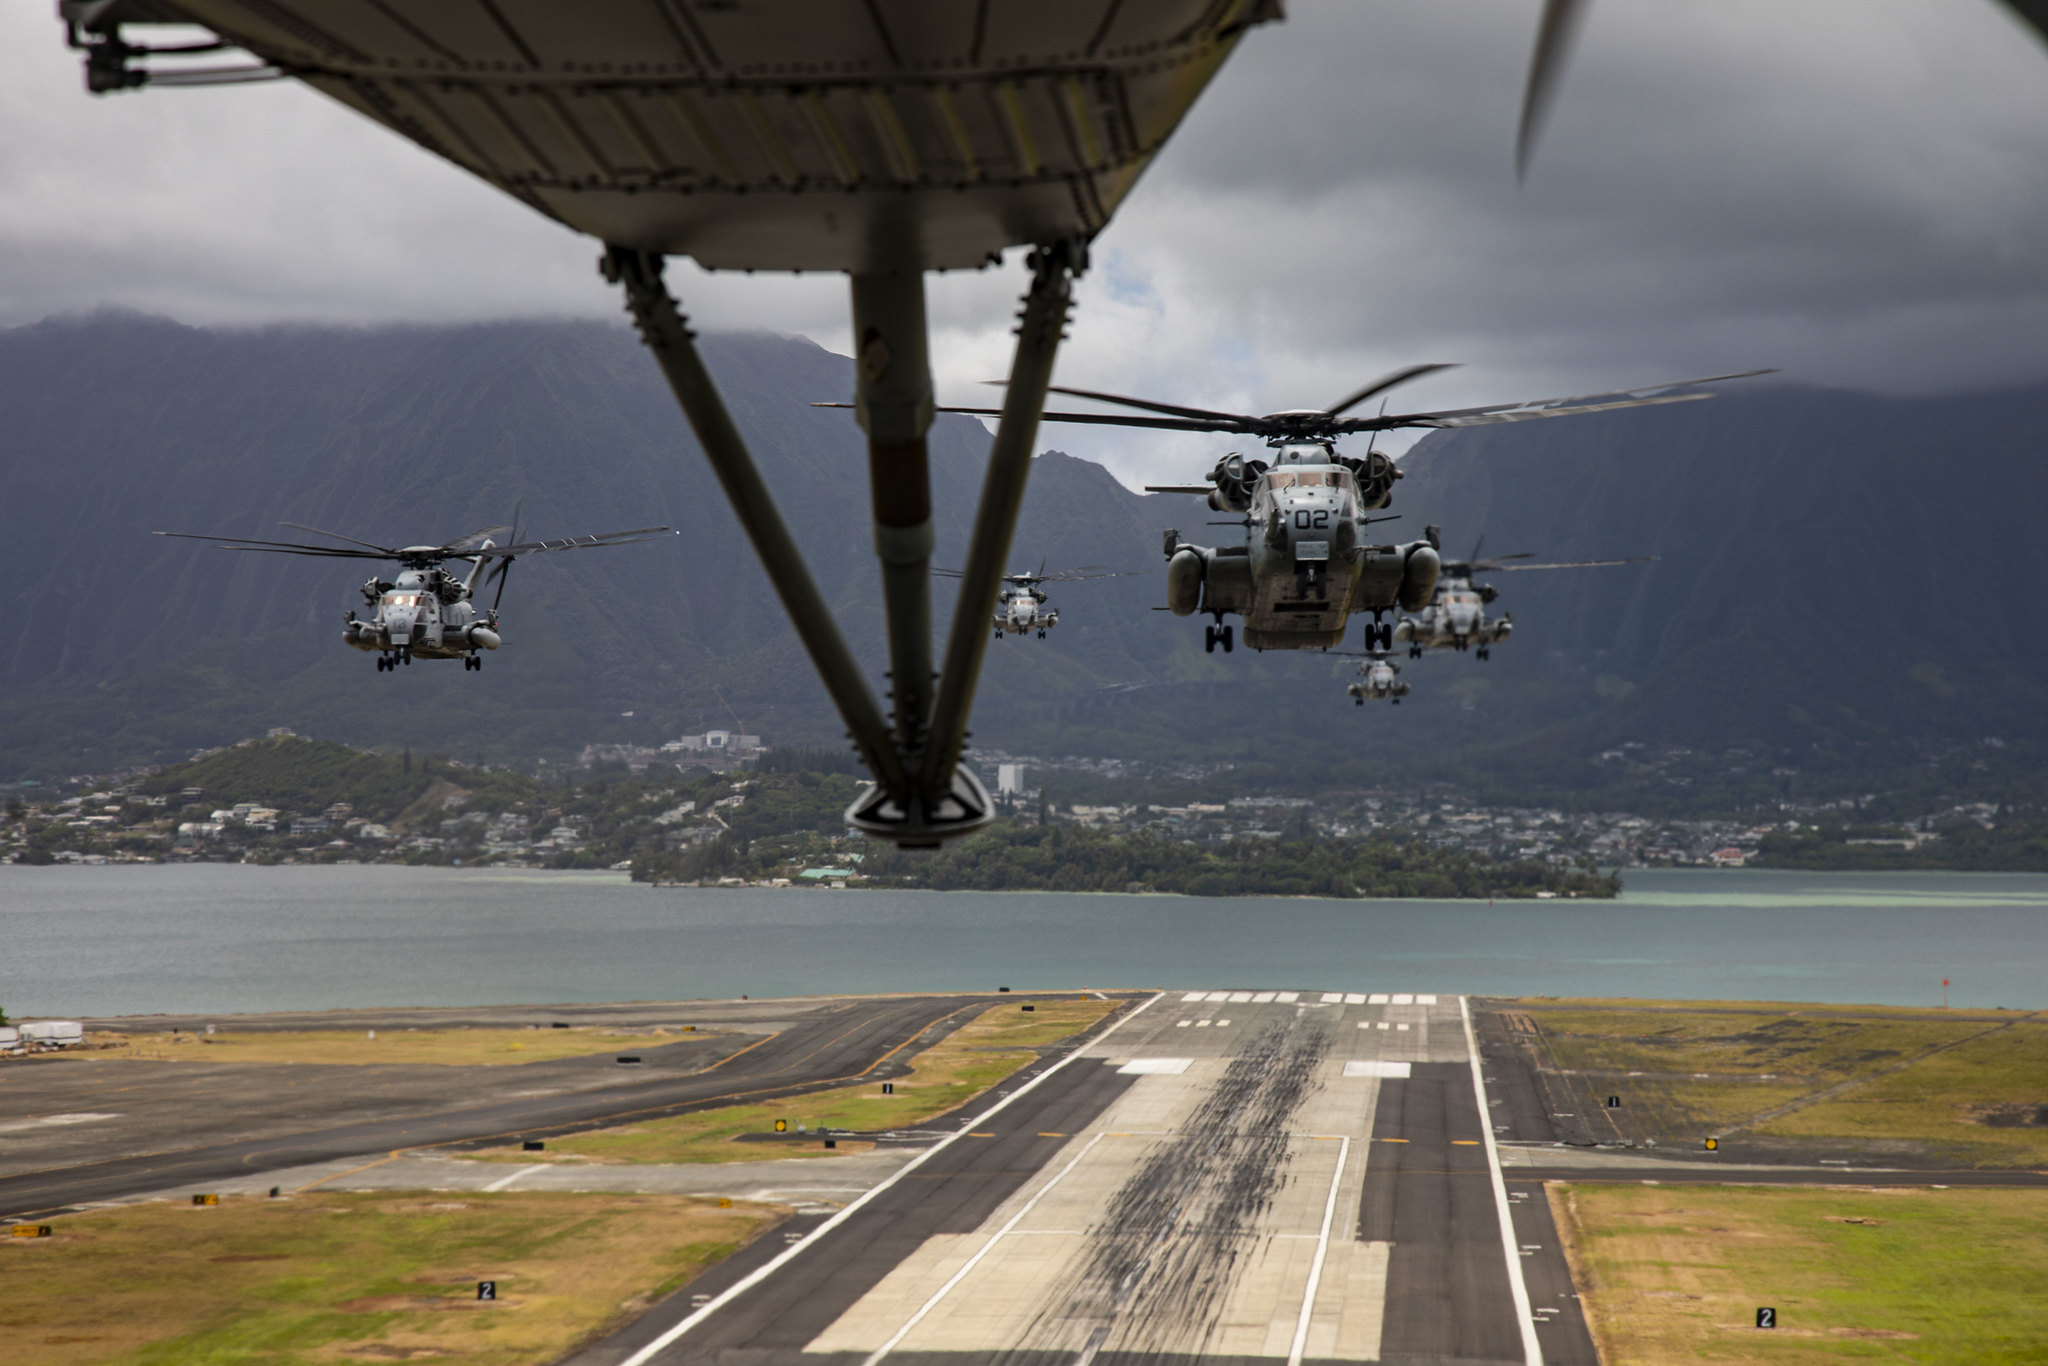 Marine Corps CH-53E Super Stallions take-off during a mass air-training mission on May 19, 2020, at Marine Corps Air Station Kaneohe Bay, Marine Corps Base Hawaii. (Lance Cpl. Samantha Sanchez/Marine Corps)